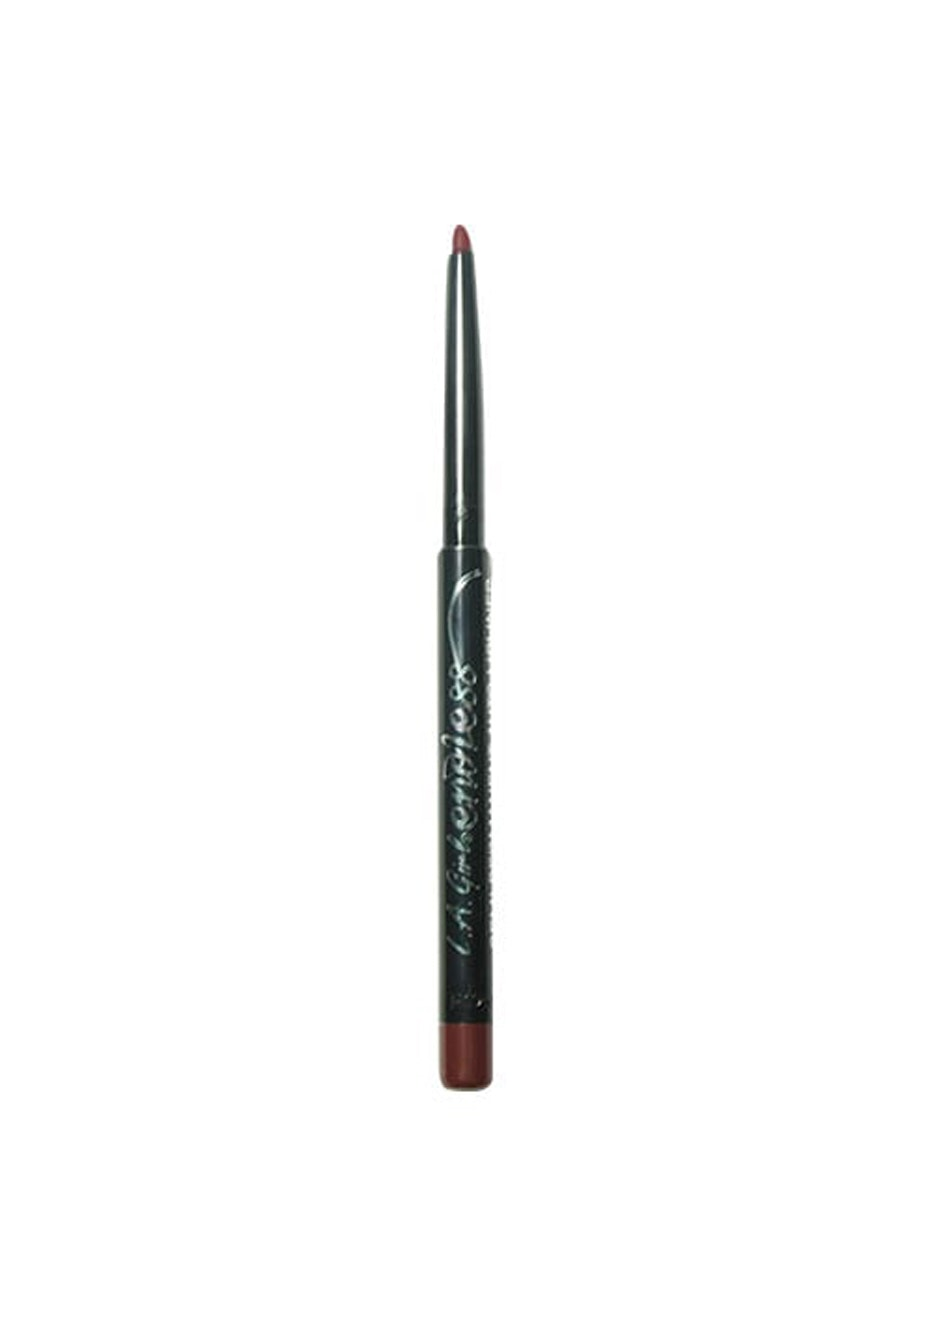 LA Girl Endless Auto Lipliner Pencil - Wine